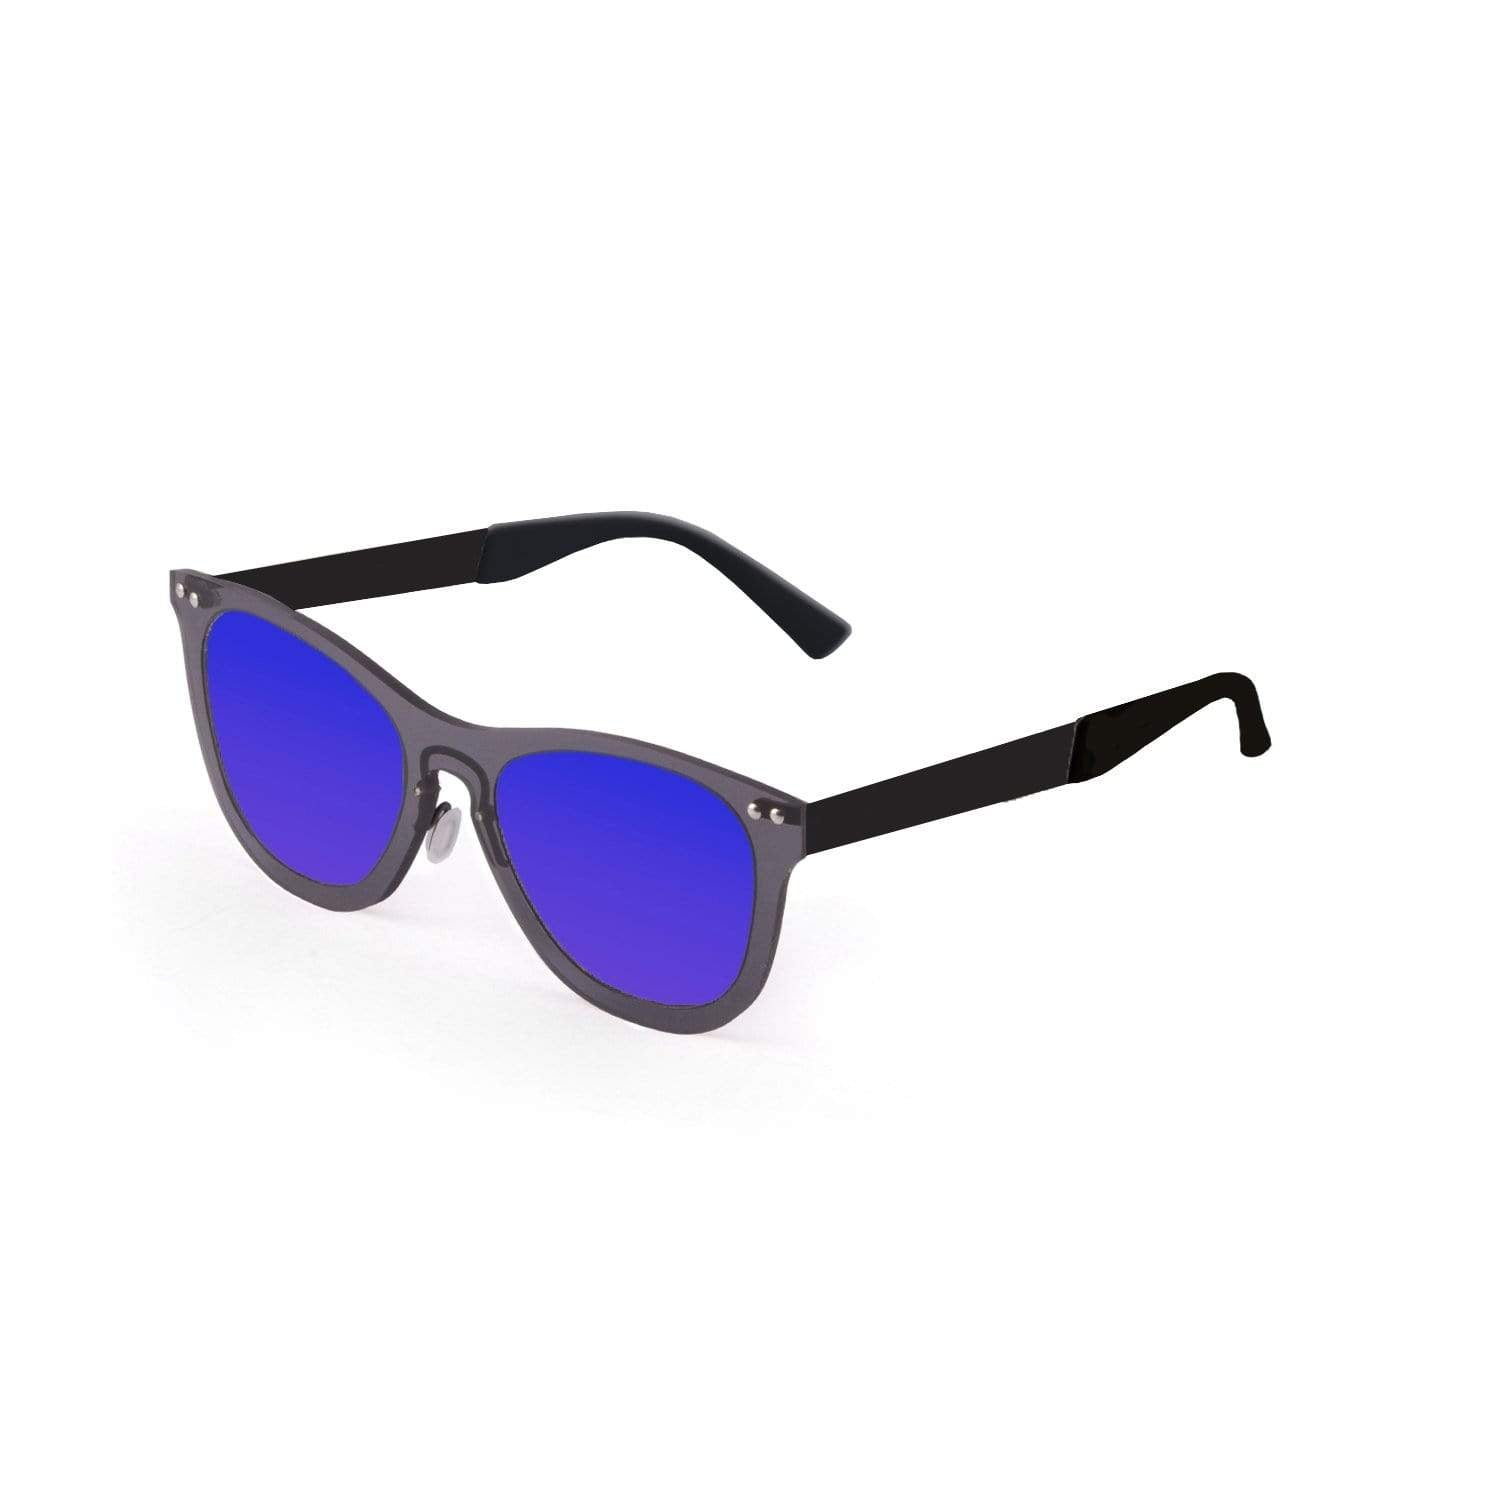 Ocean Sunglasses Accessories Sunglasses blue-2 / NOSIZE Ocean Sunglasses - FLORENCIA